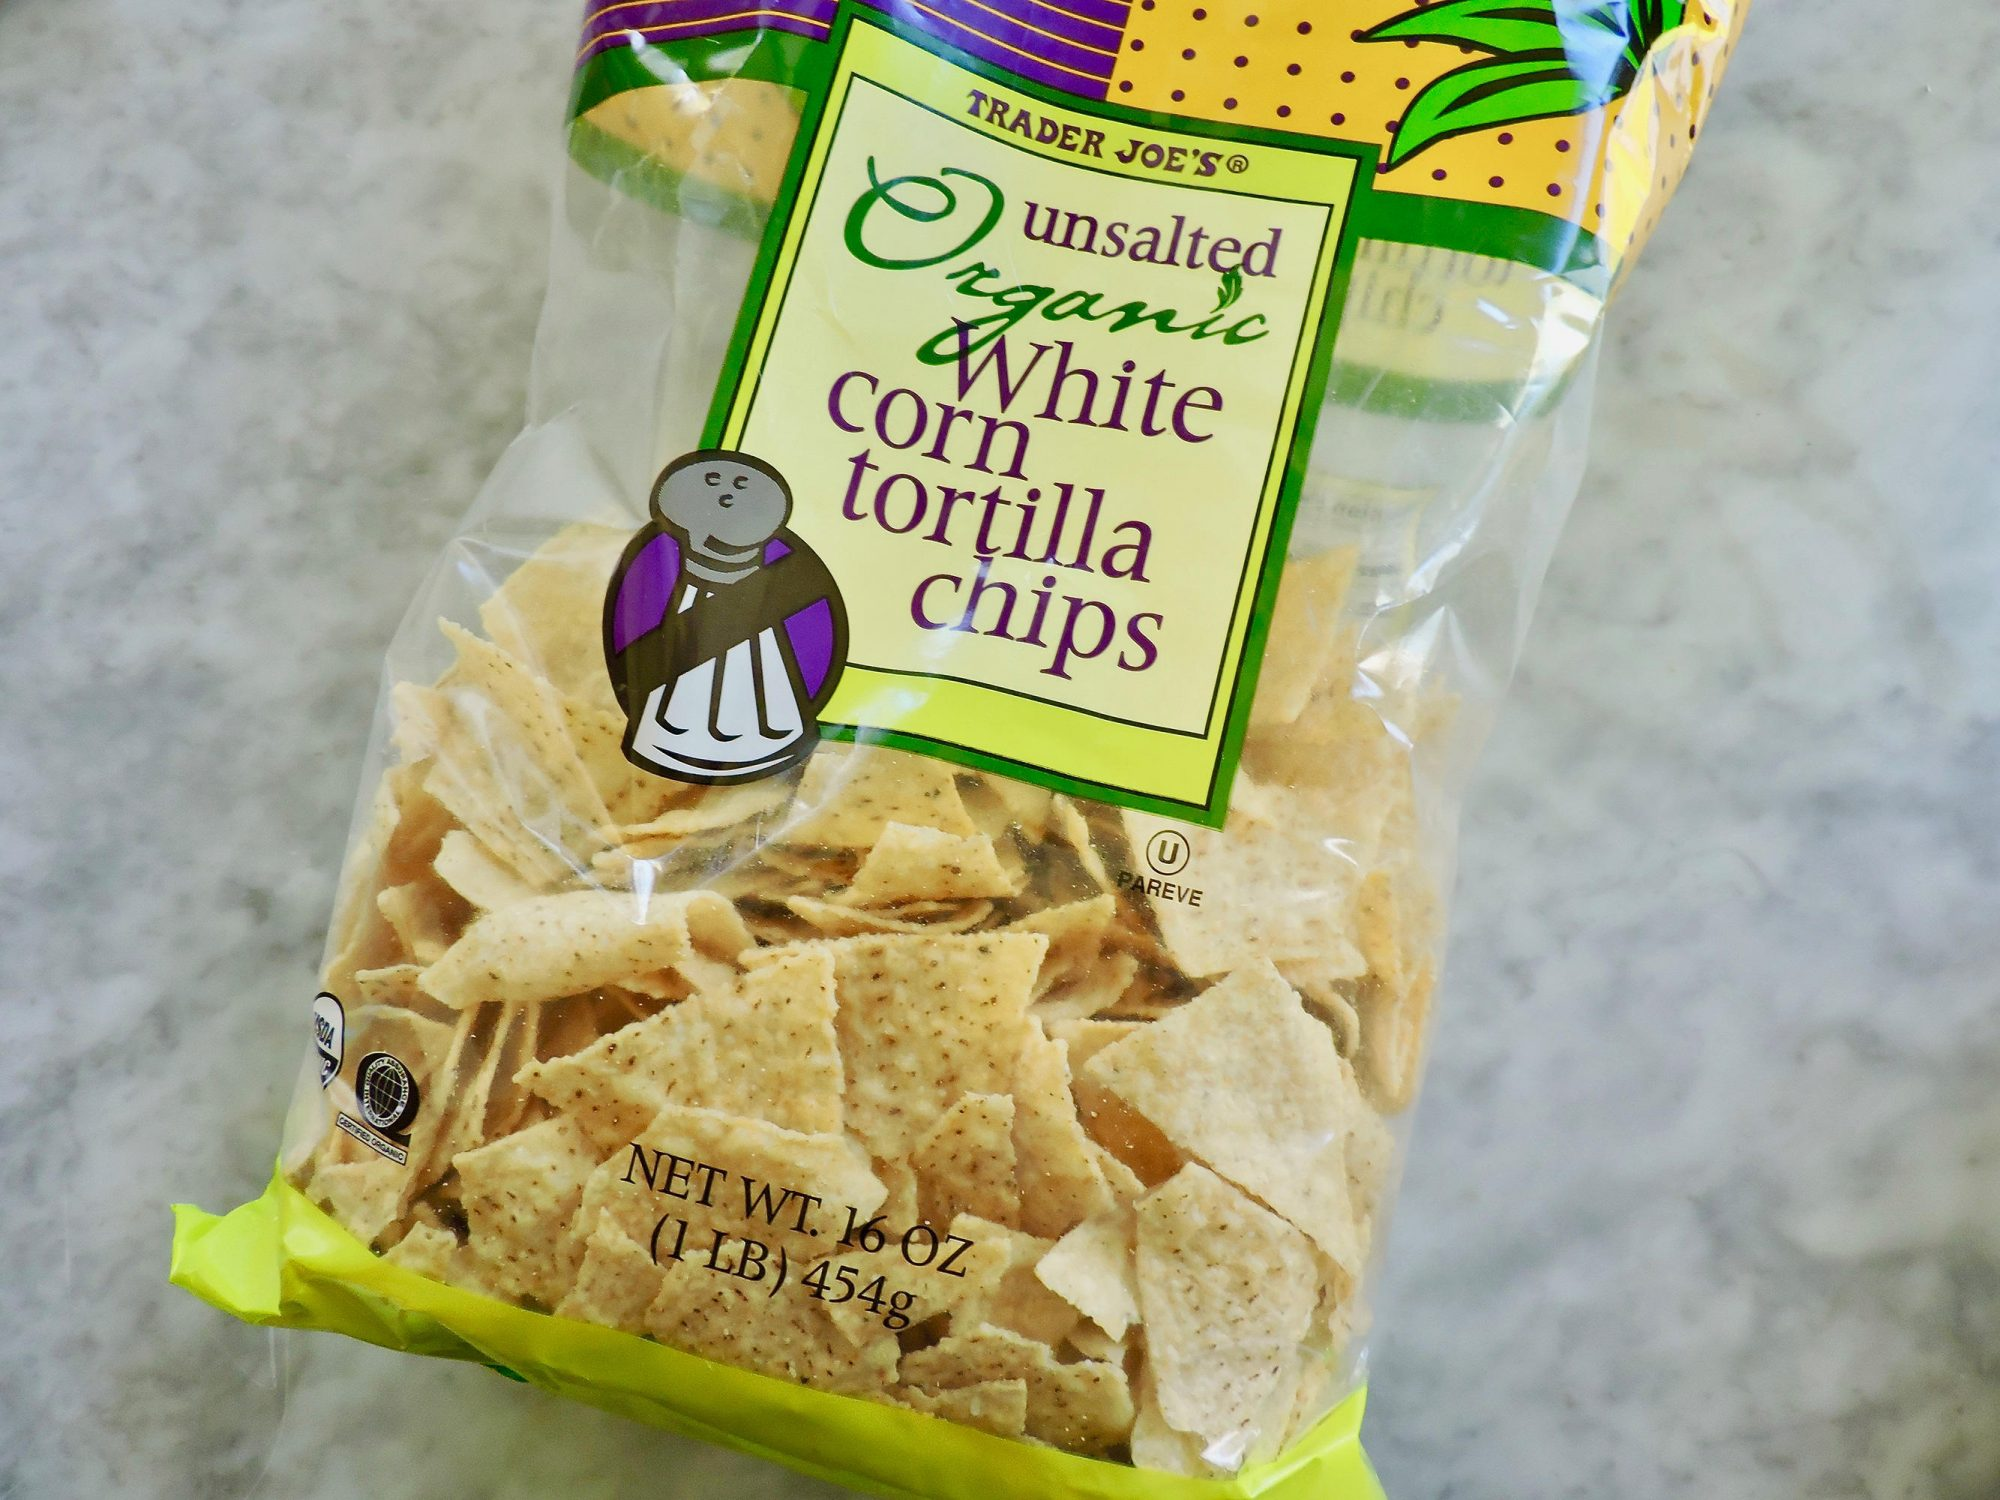 15 Nutritionist-Approved Trader Joe's Foods for $5 or Less 1804w-Trader-Joes-Unsalted-Tortilla-Chips